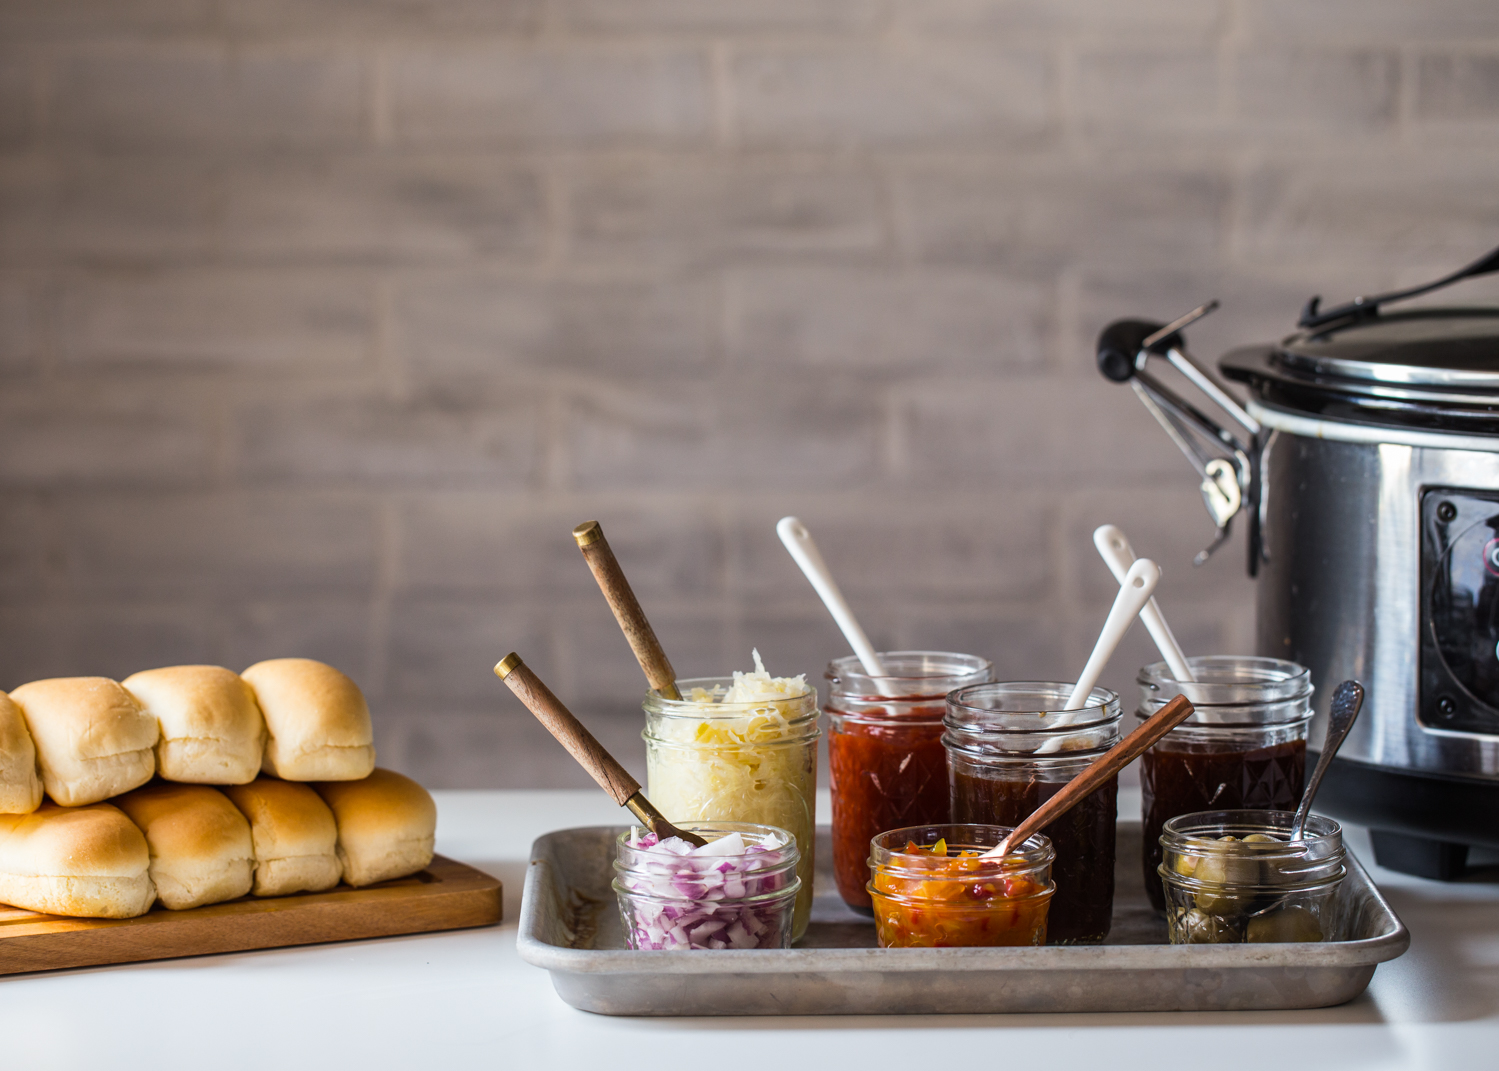 Putting together a Bratwurst and Hot Dog Bar is simple with these easy entertaining tips!